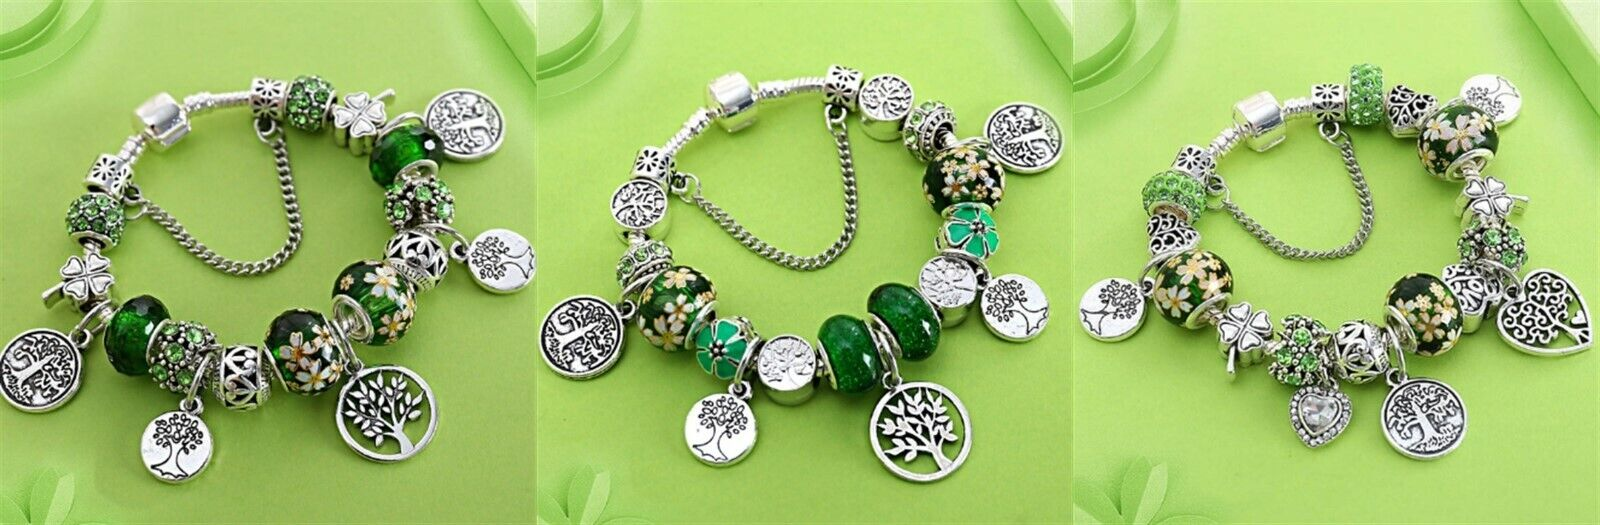 Authentic Pandora Charm Bangle Bracelet 925 Sterling Silver Green Tree of Life